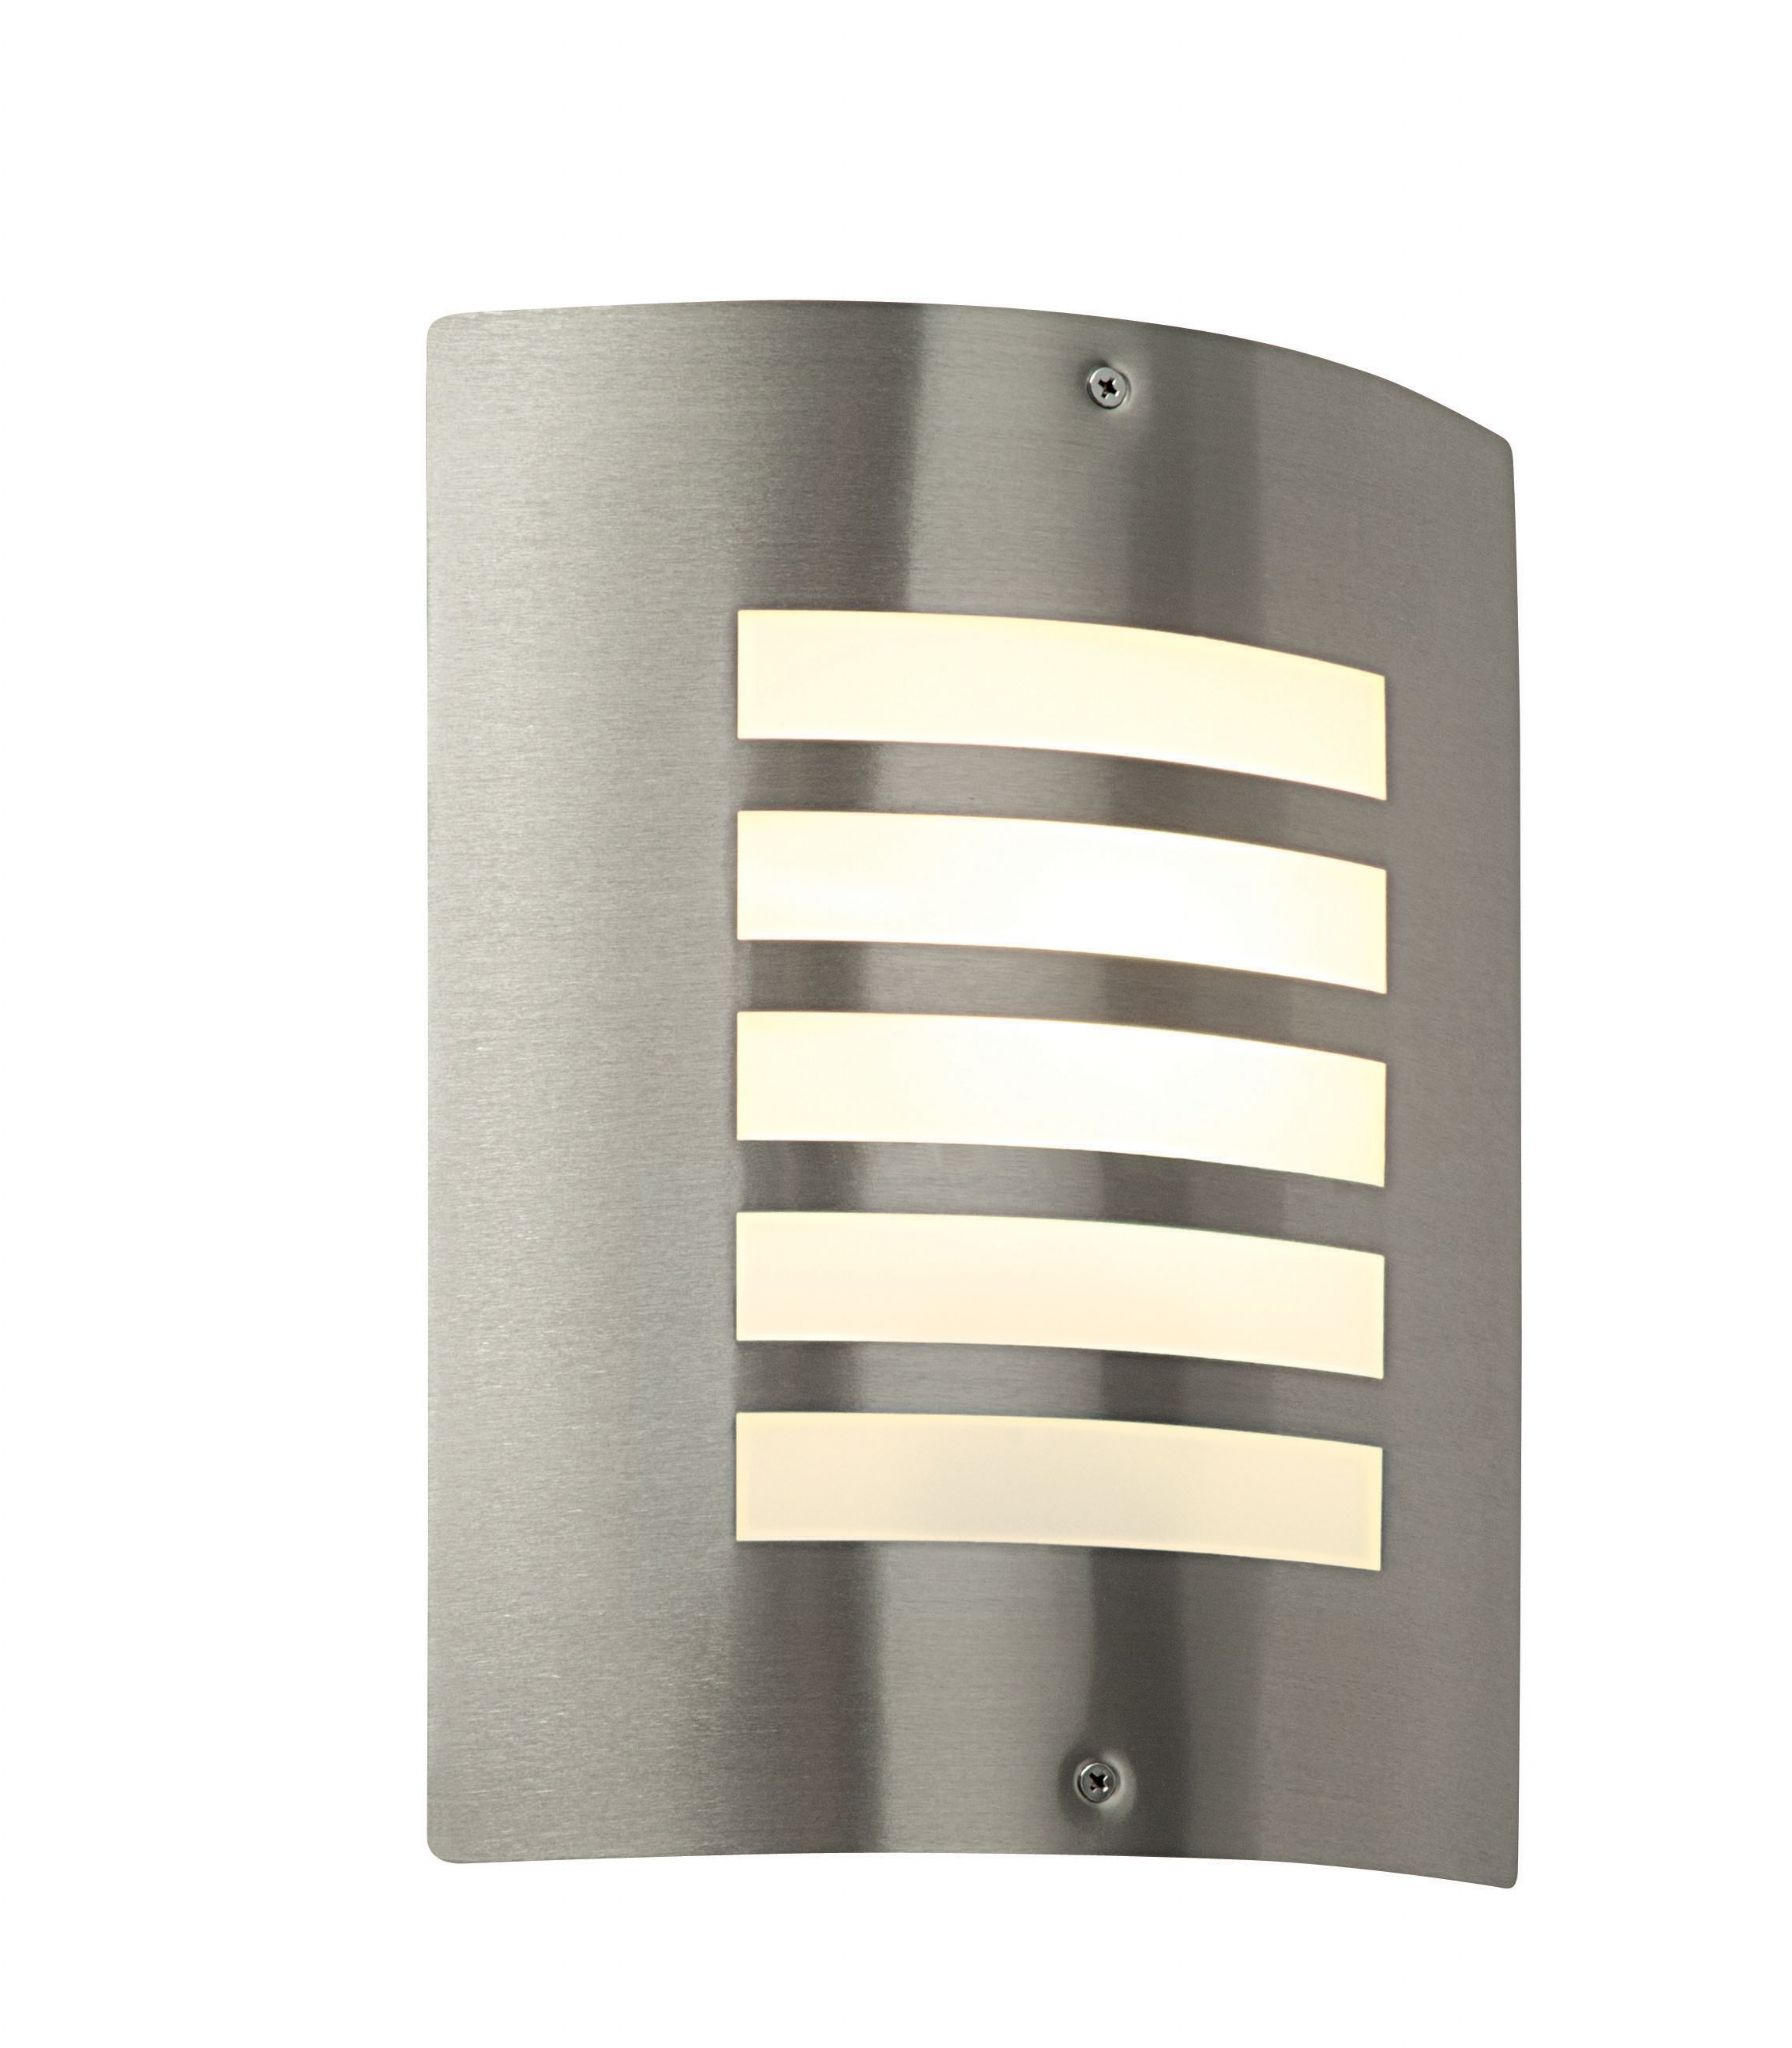 Brushed Stainless Steel Amp Opal Polycarbonate Outdoor Wall